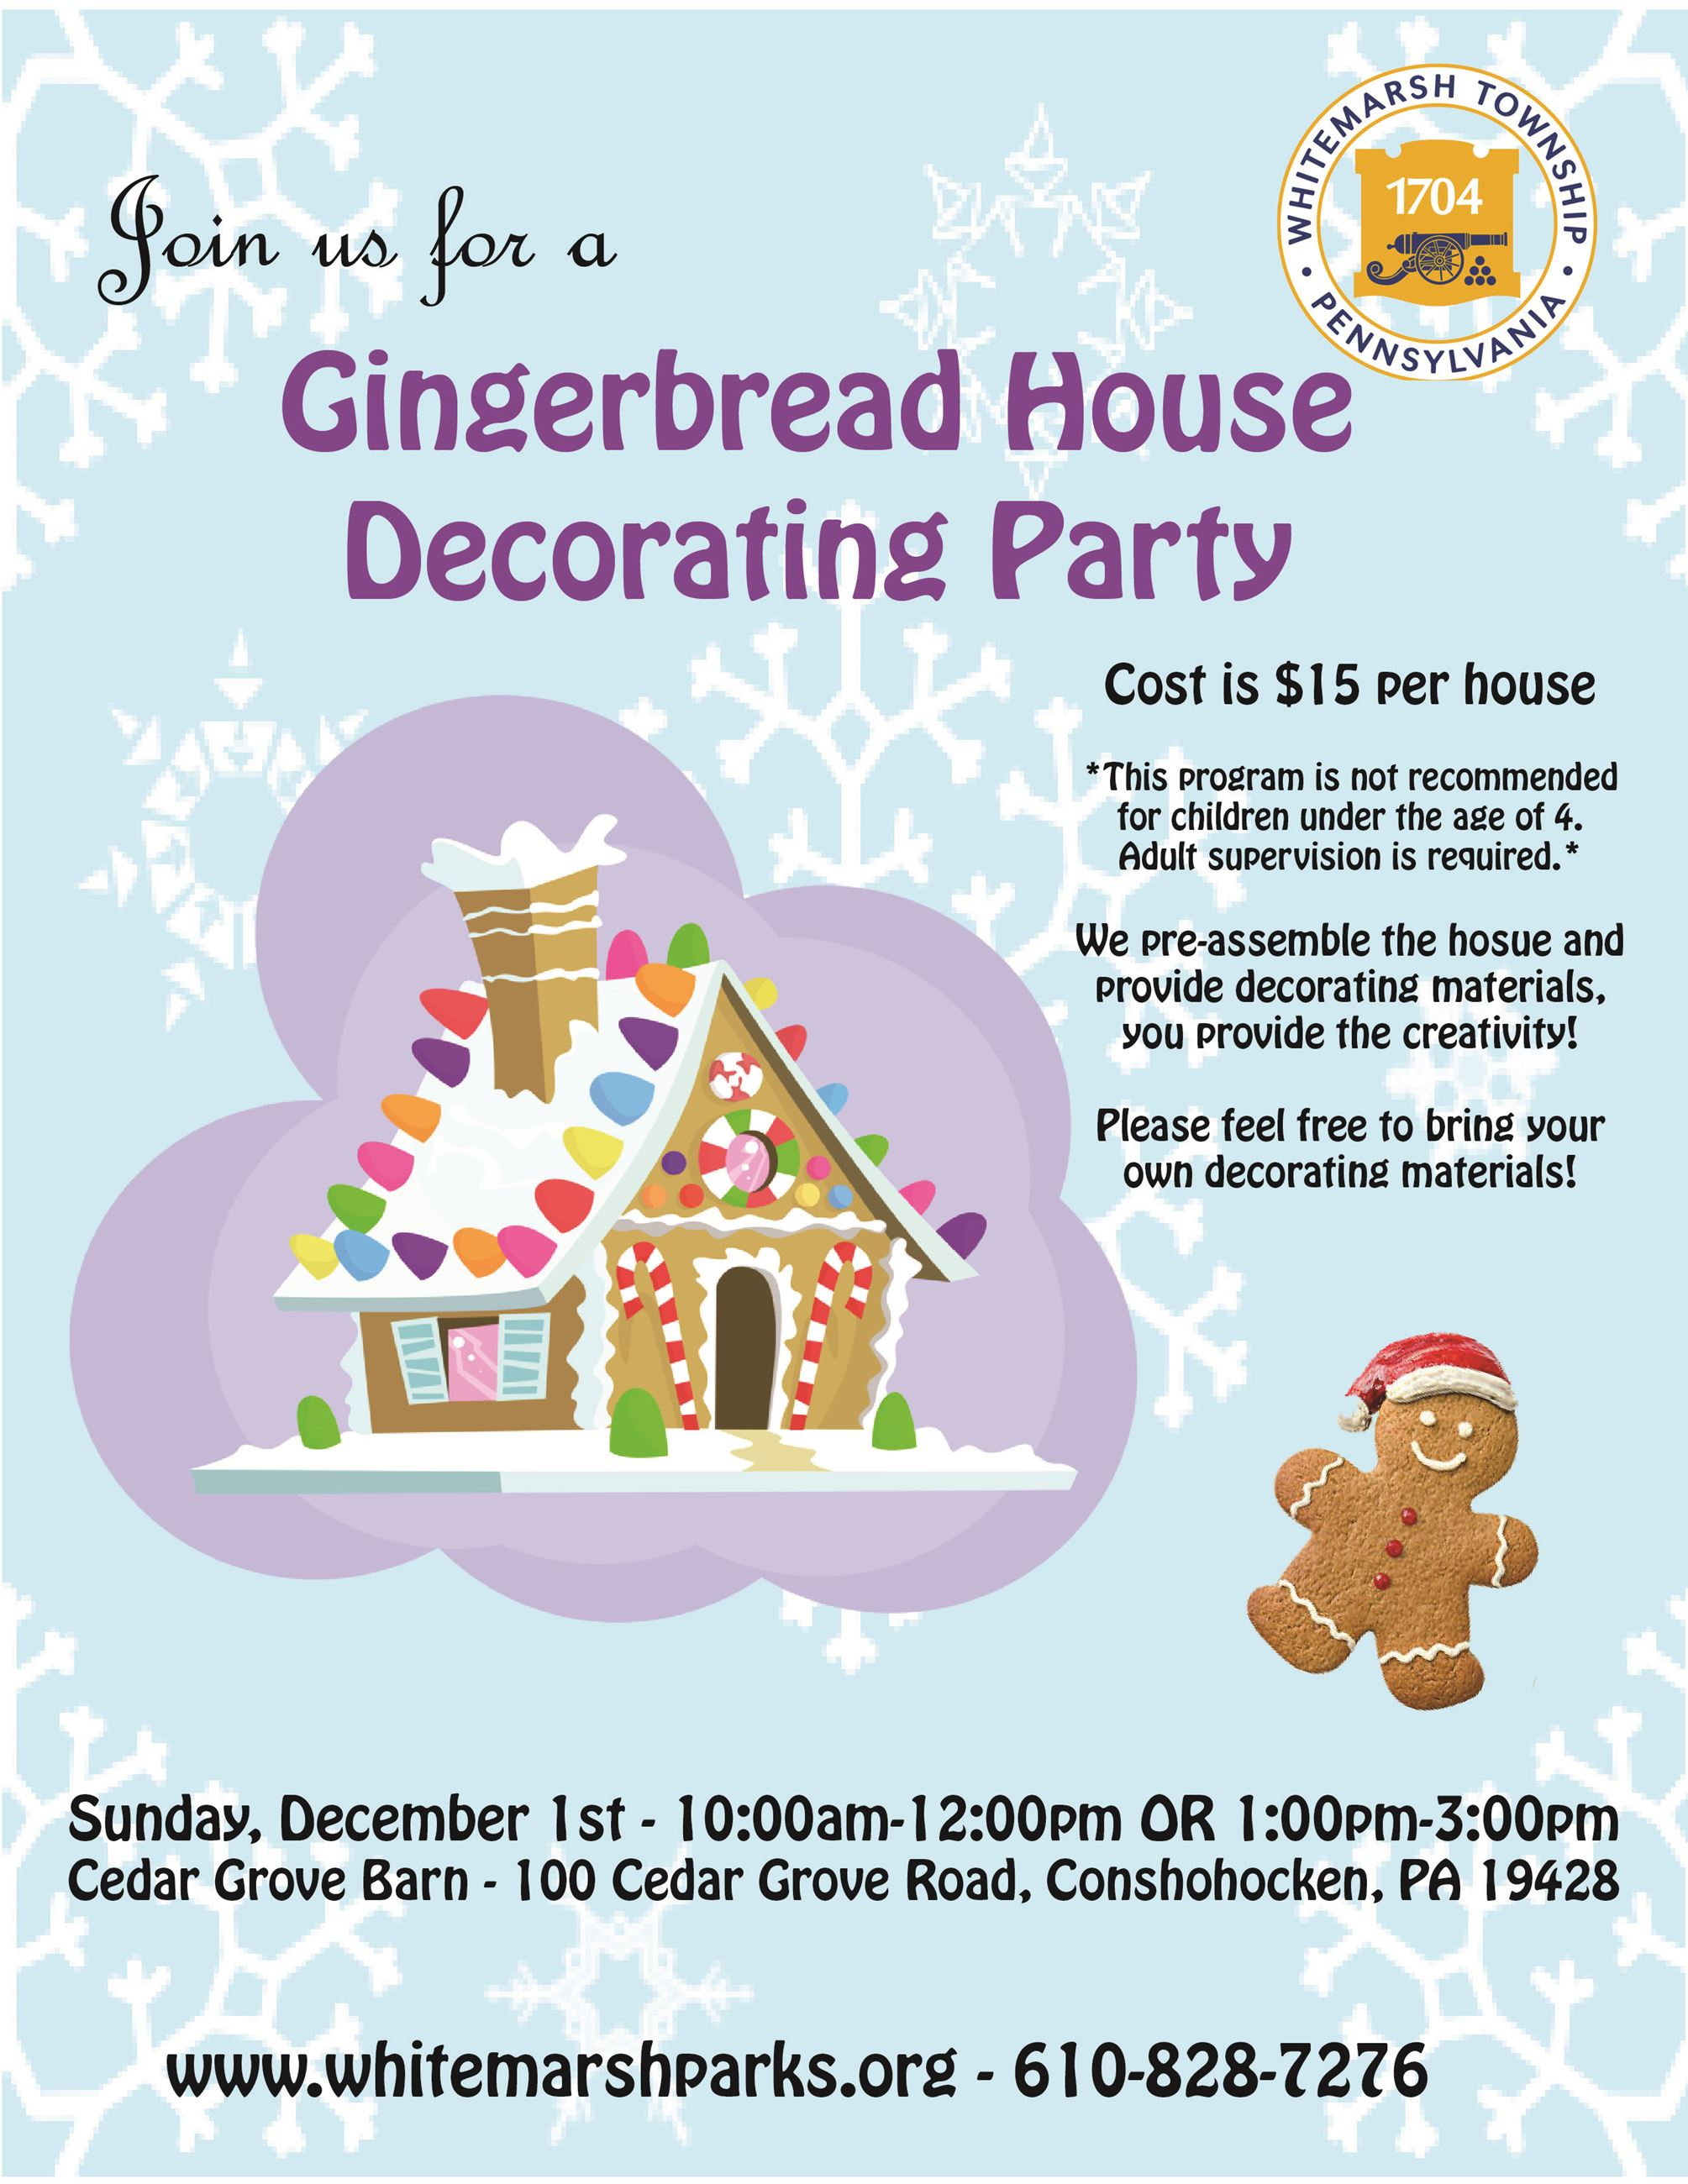 2019 Gingerbread House Decorating